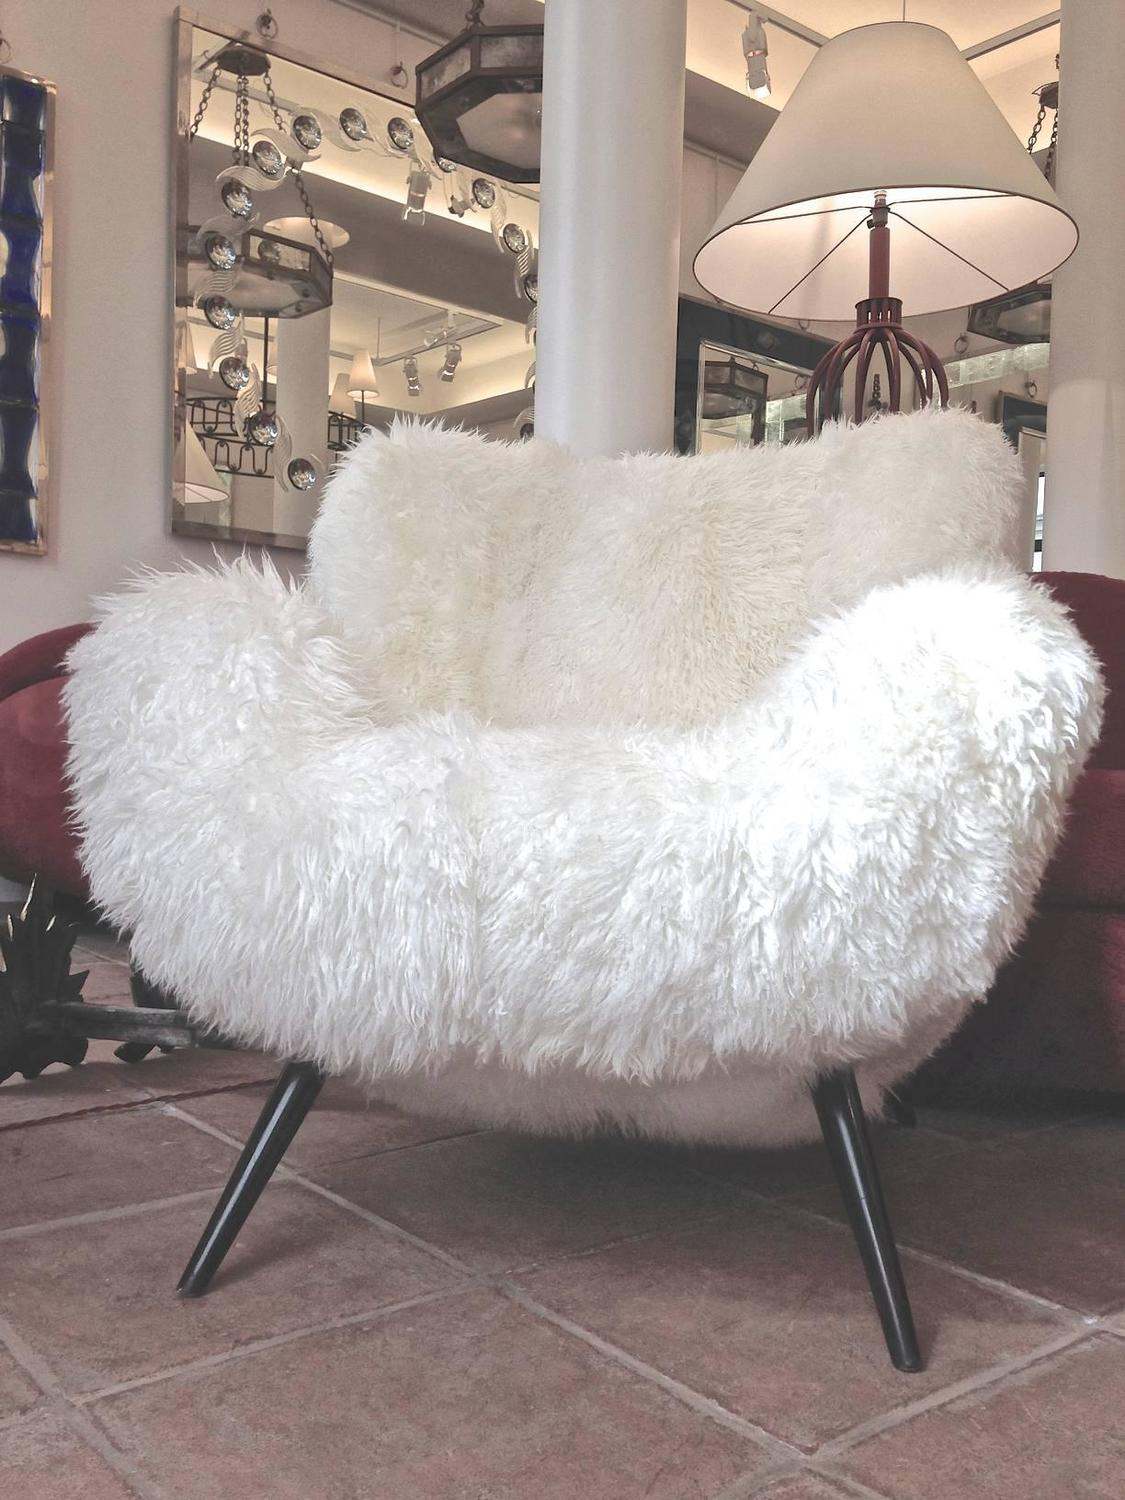 Fritz neth rarest spectacular wood legged lounge chairs covered in sheepskin fur for sale at 1stdibs